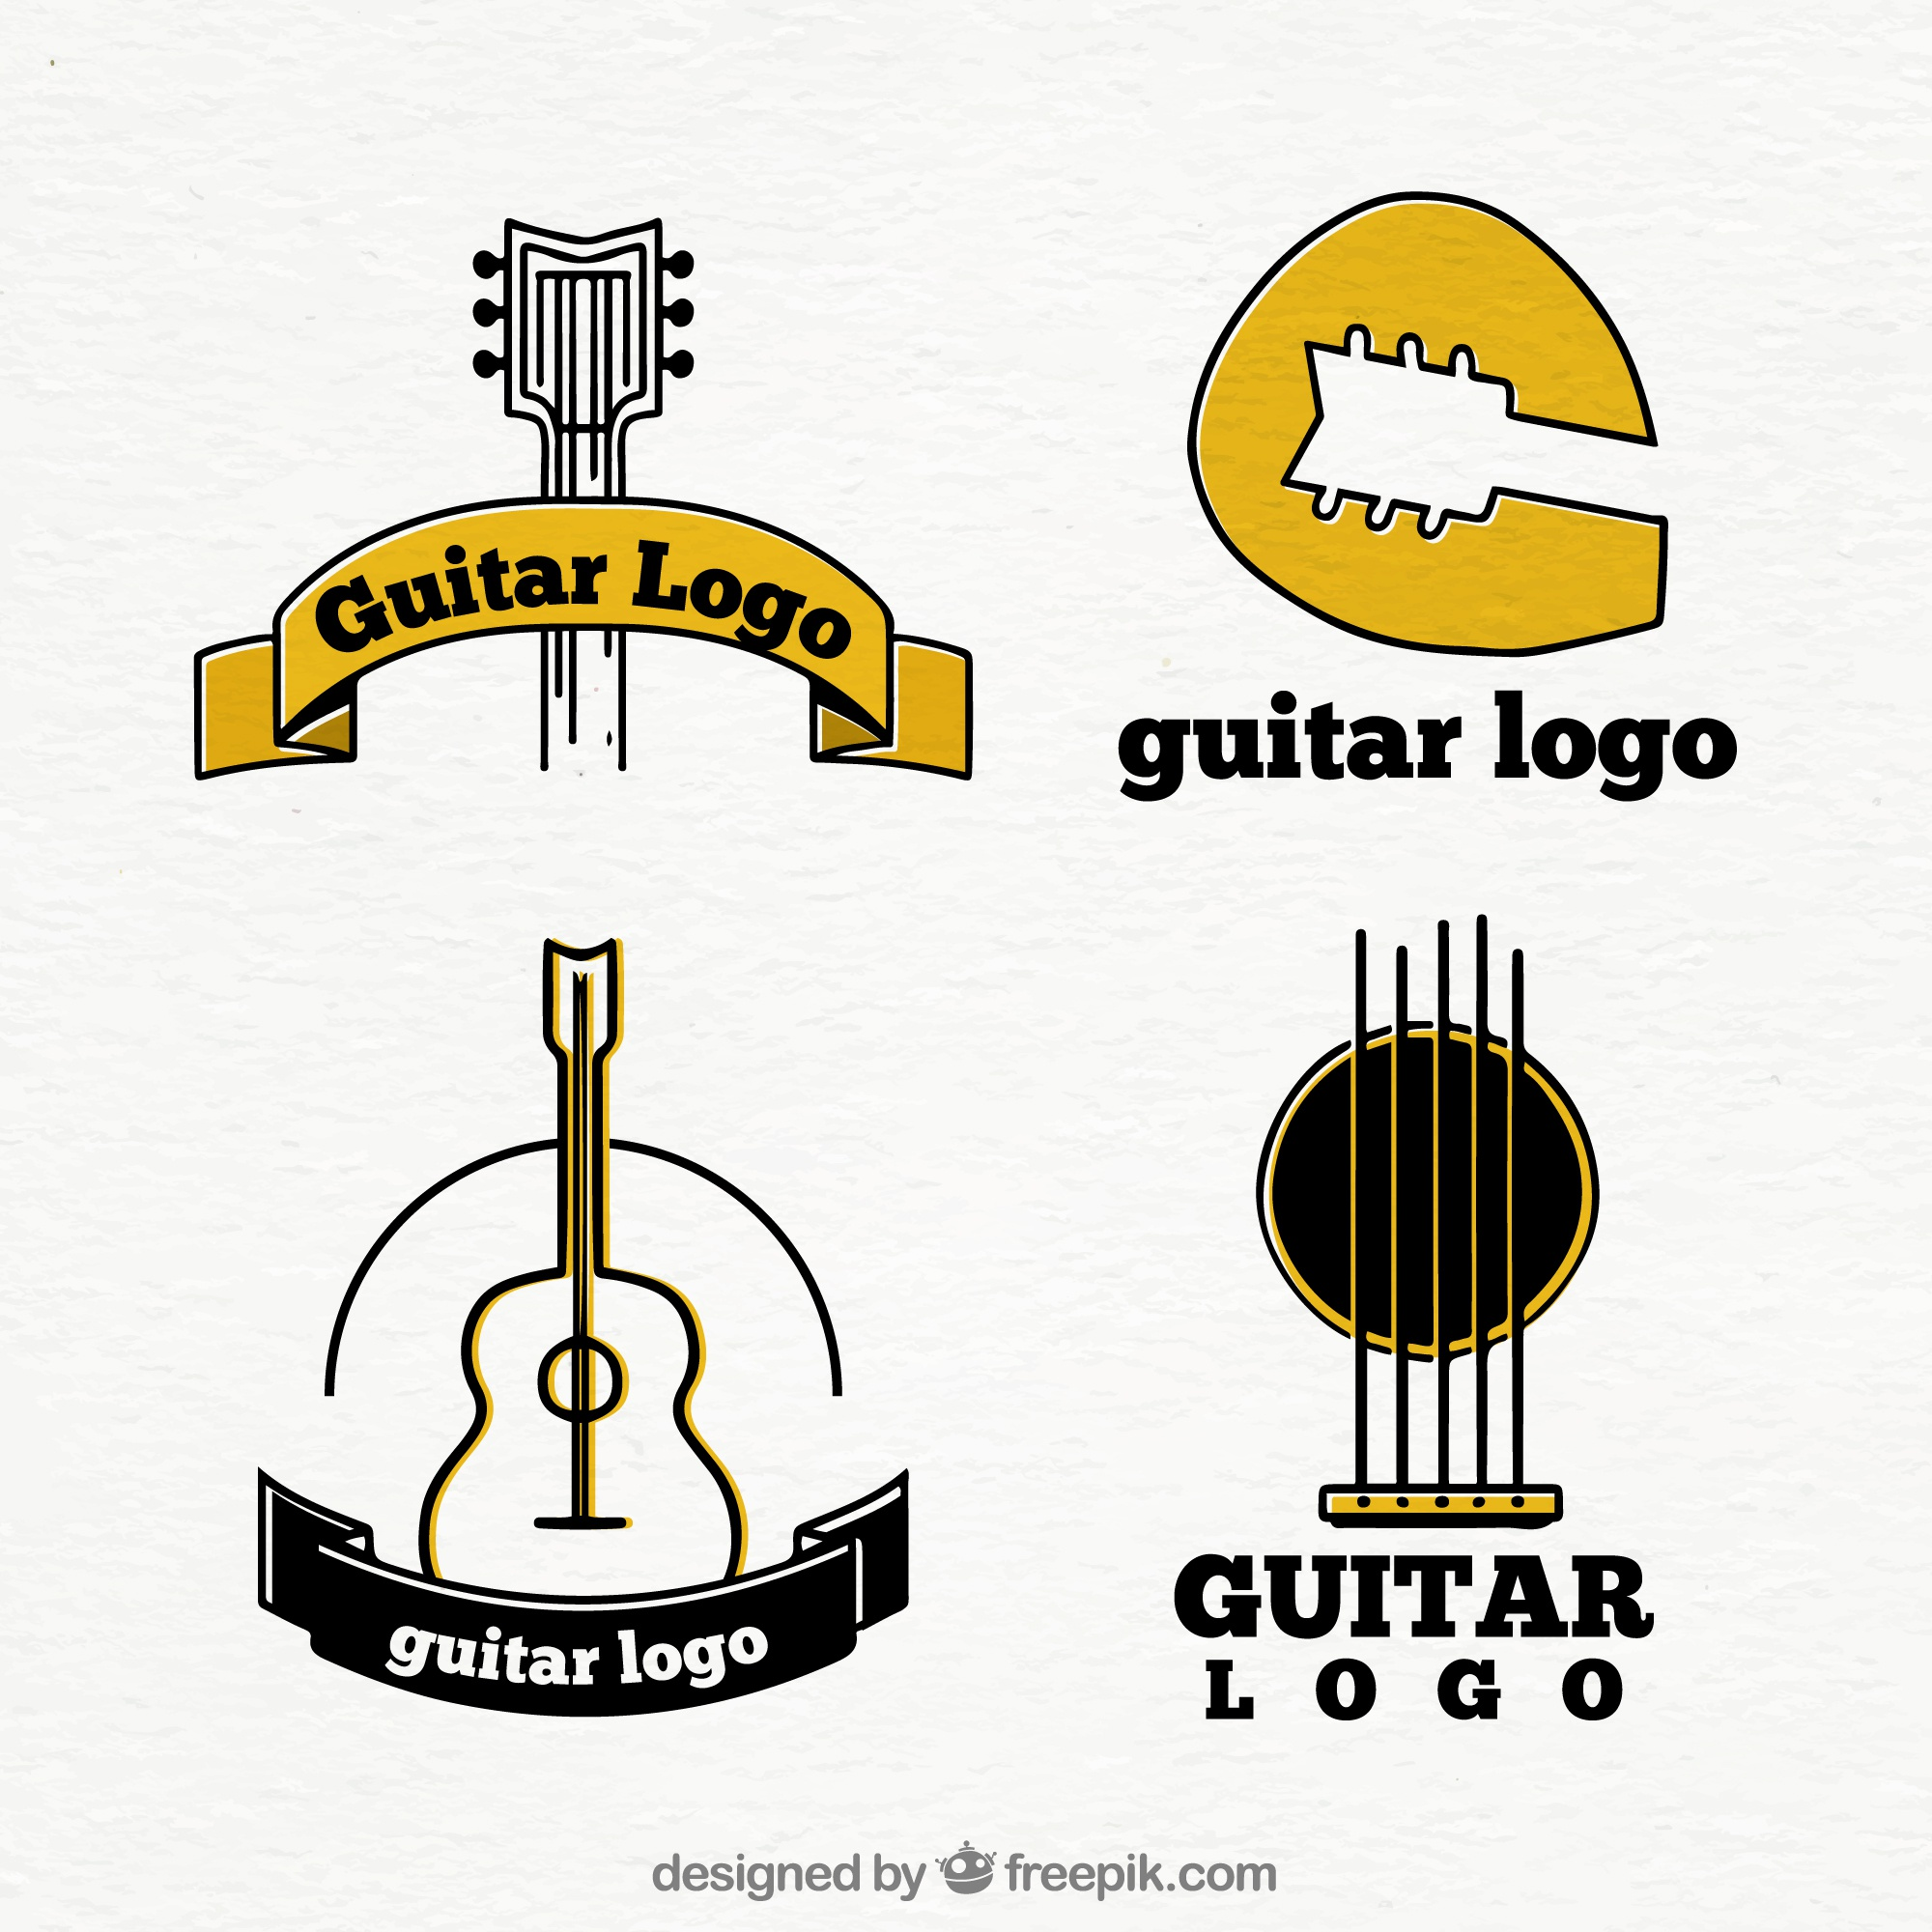 Set of four guitar logos with yellow details